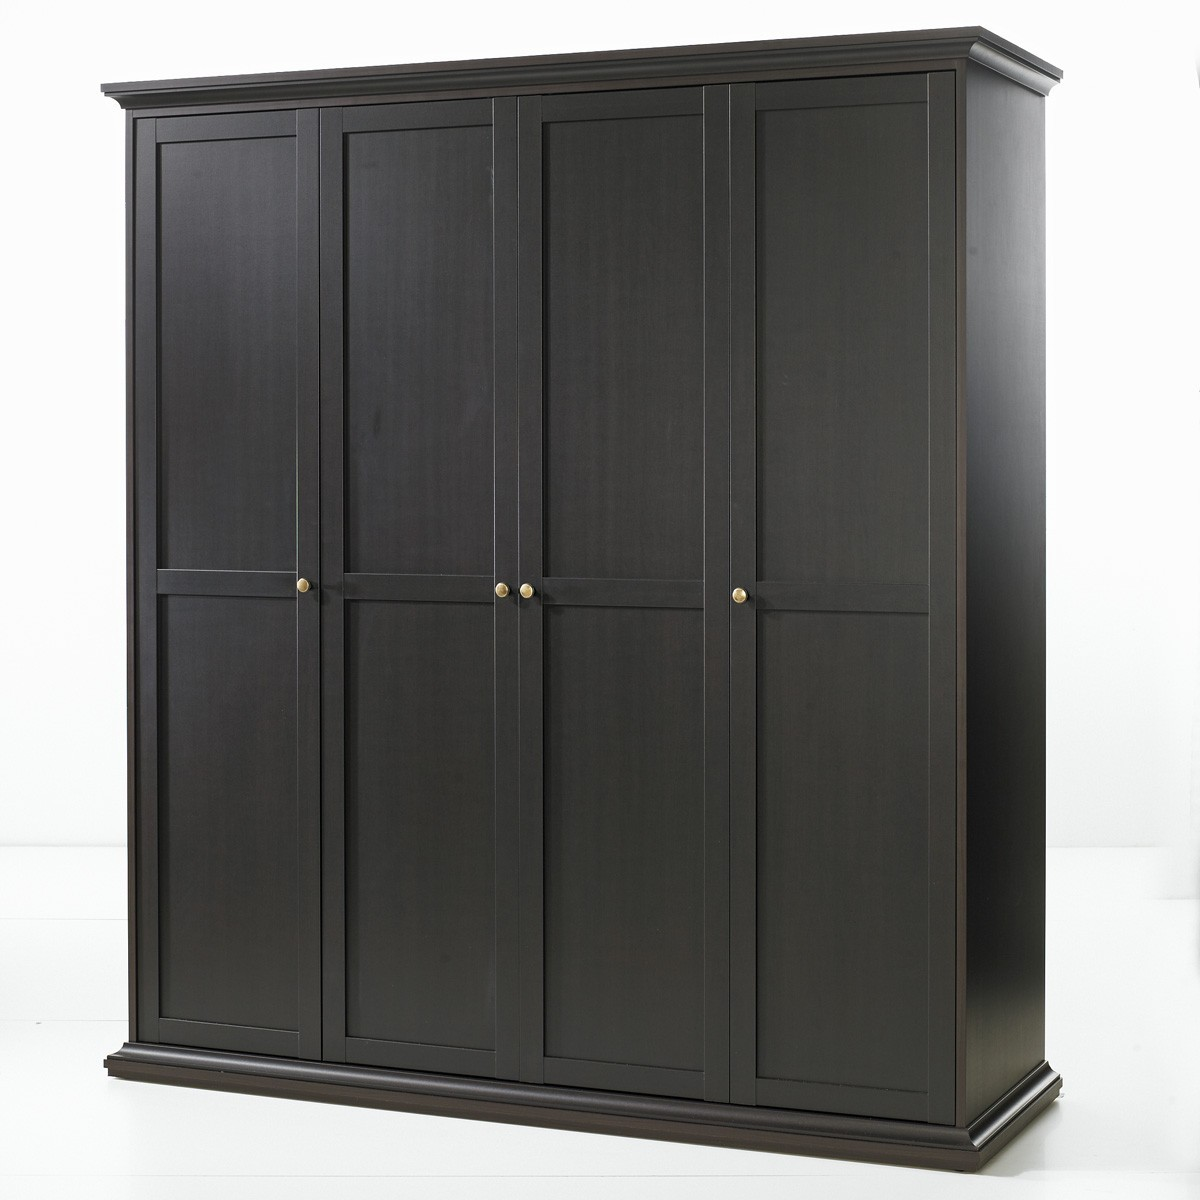 levivo transportabler kleiderschrank mit vielen f chern. Black Bedroom Furniture Sets. Home Design Ideas